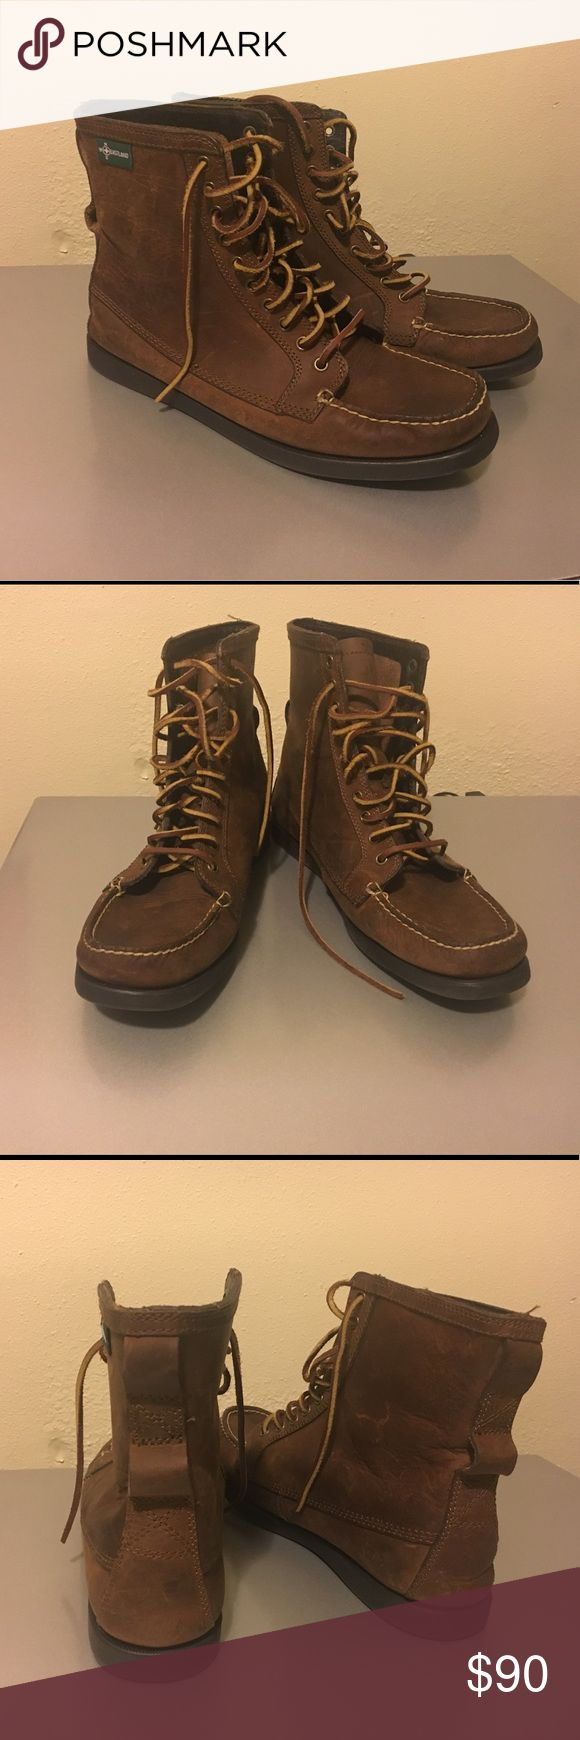 Eastland up country moc boot So cute for winter, perfect condition, never been worn. Women's size 10 Eastland Shoes